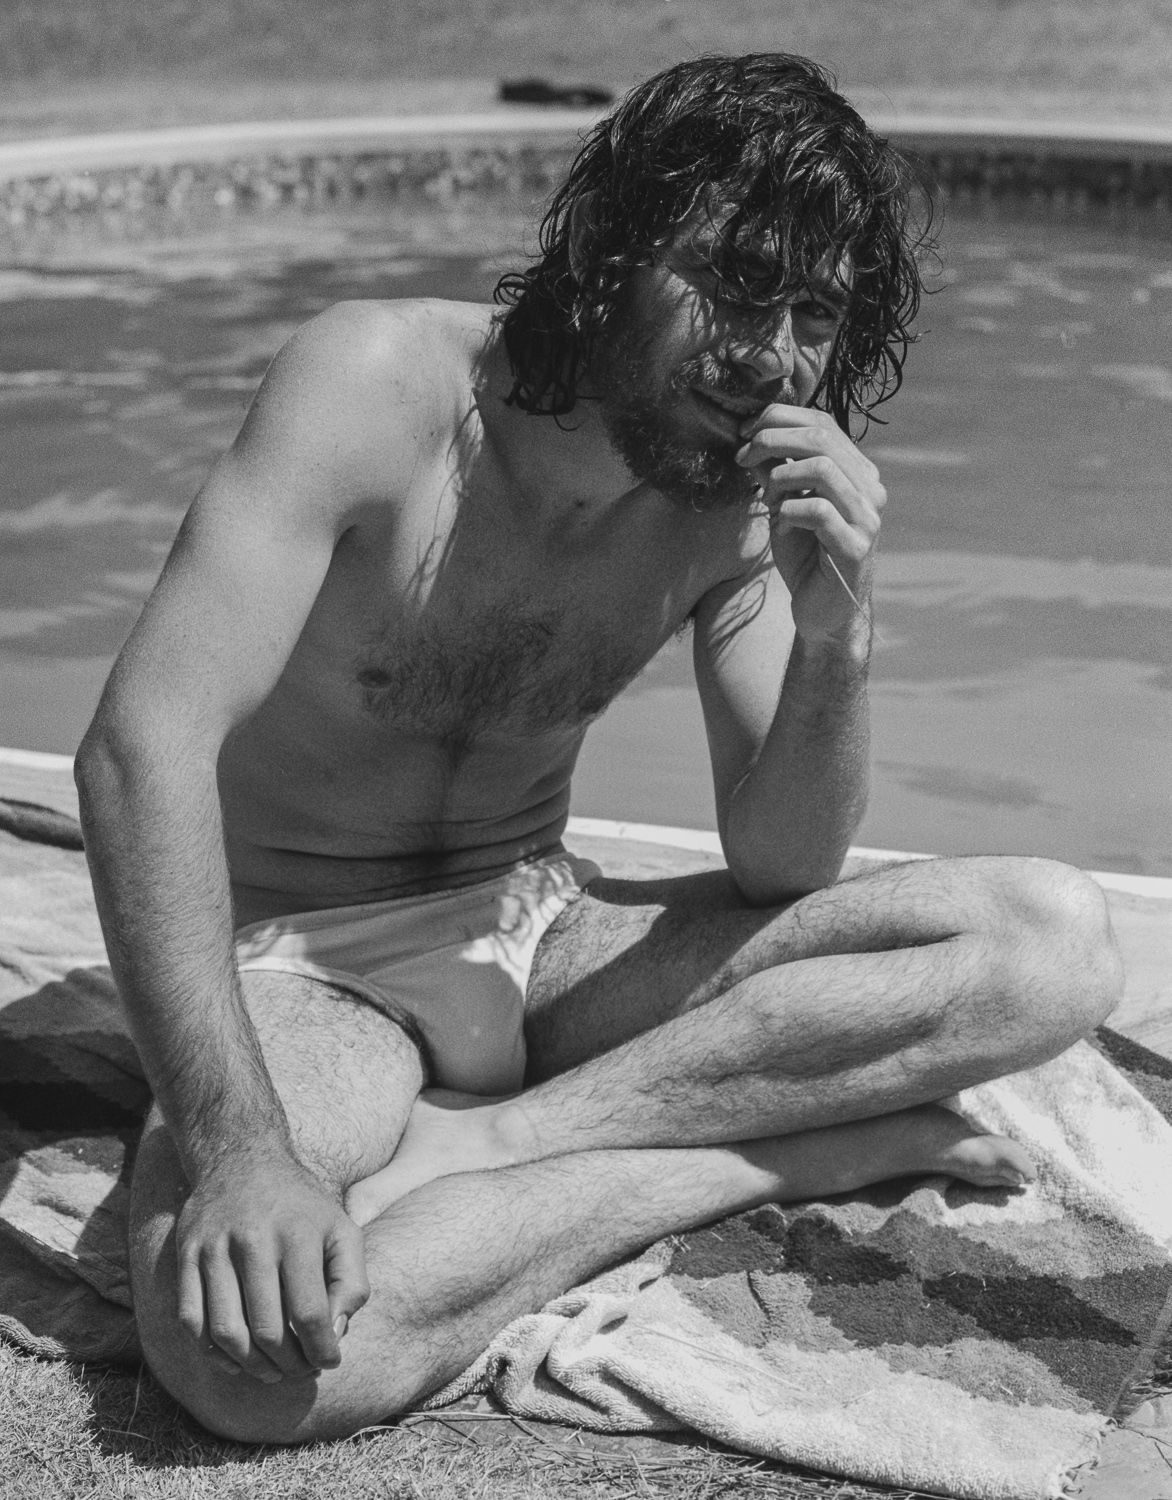 Tony, Vaal River - 1976